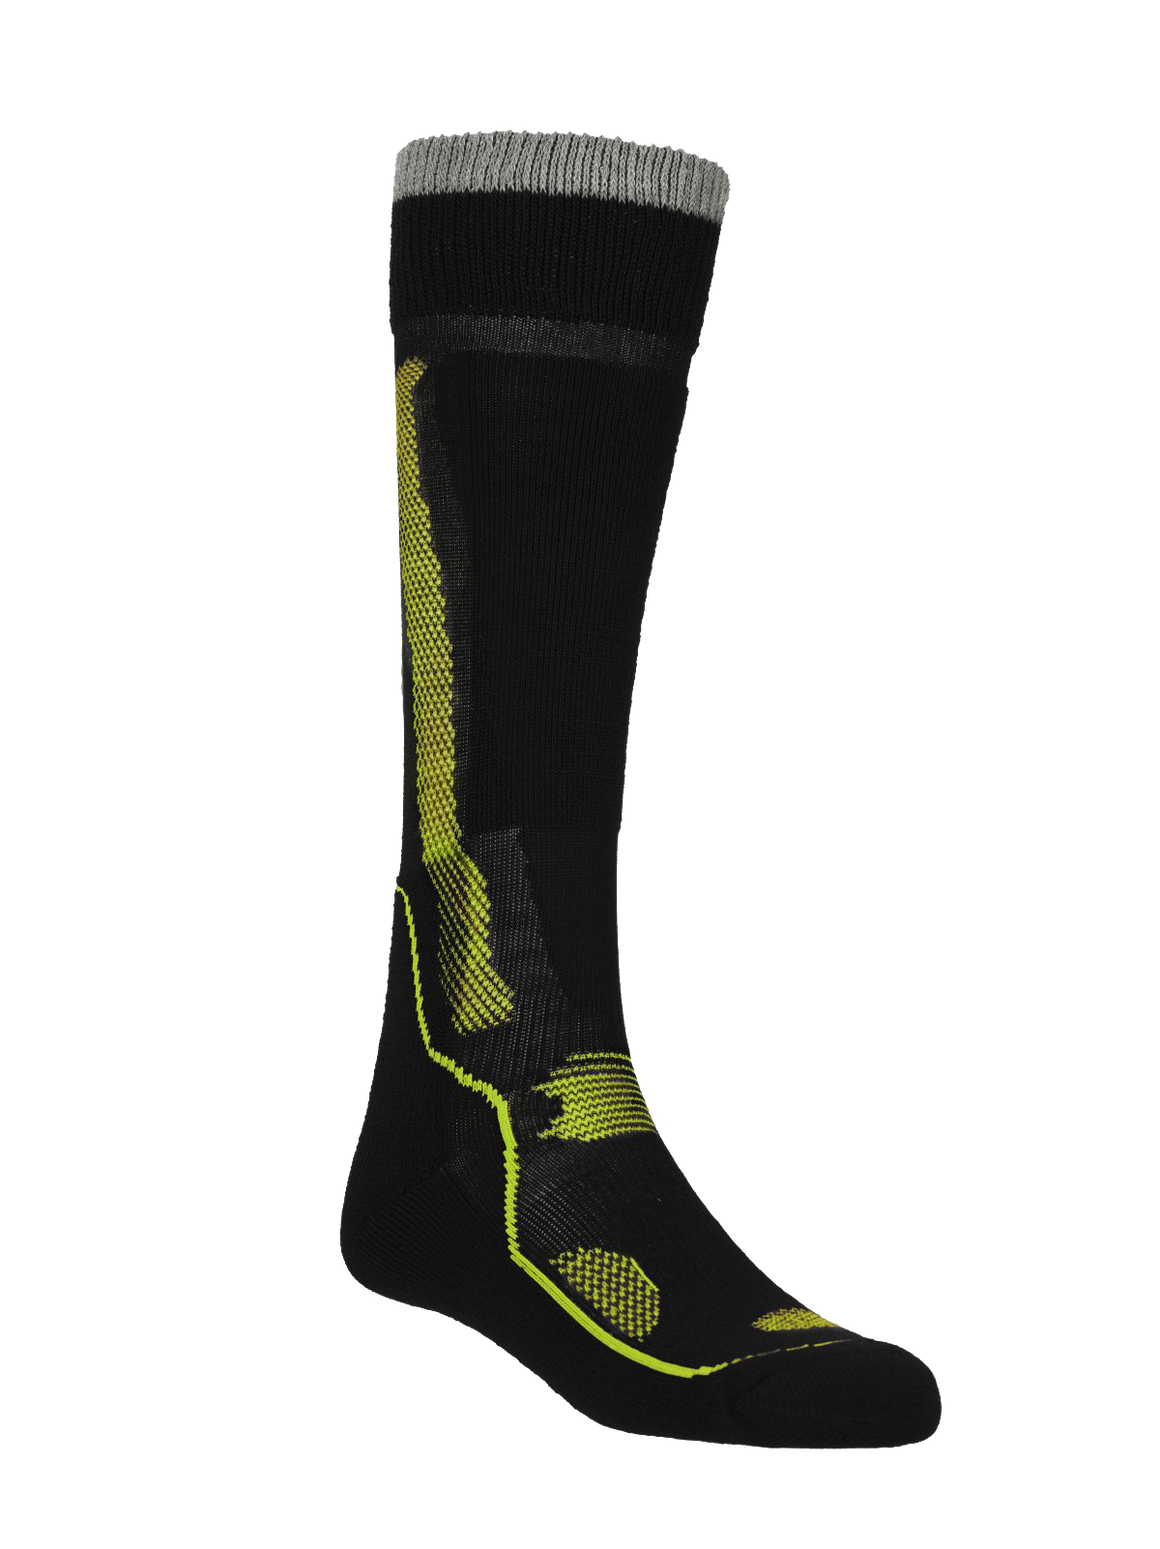 Ski / Snowboard Merino Wool Plus Socks